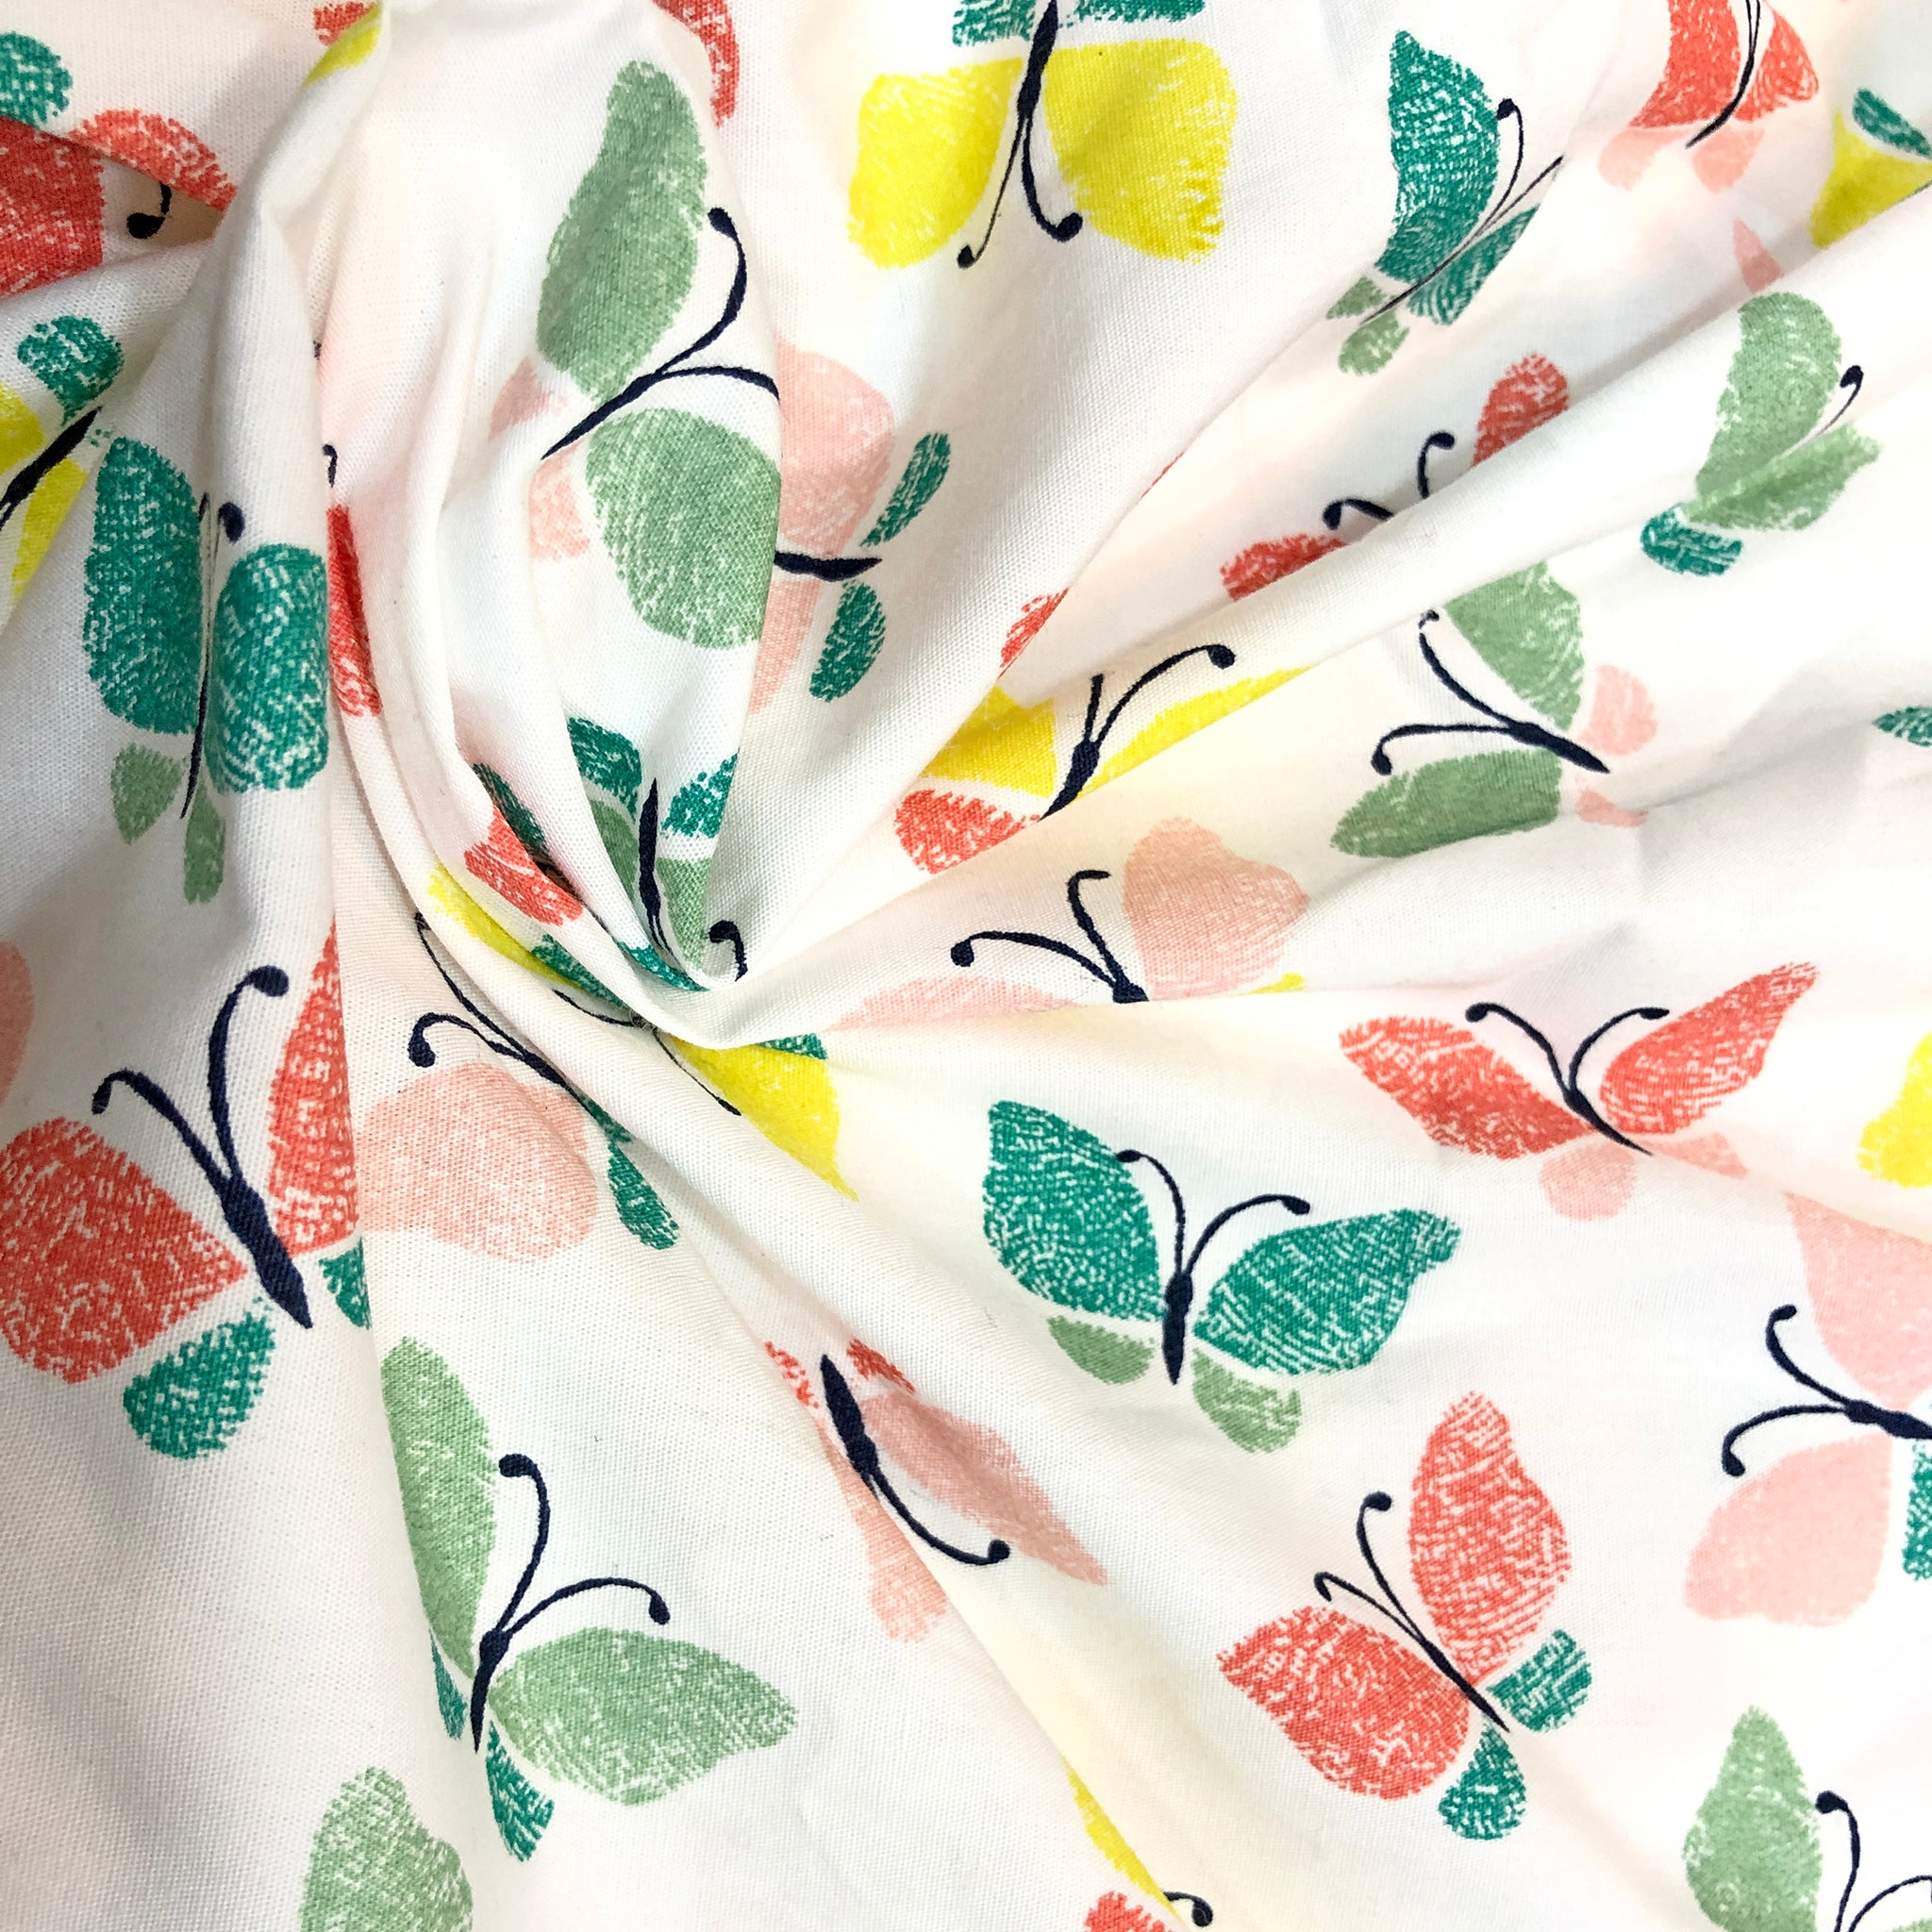 colourrful-butterfly-printed-cotton-fabric-online-india-at-cheap rates